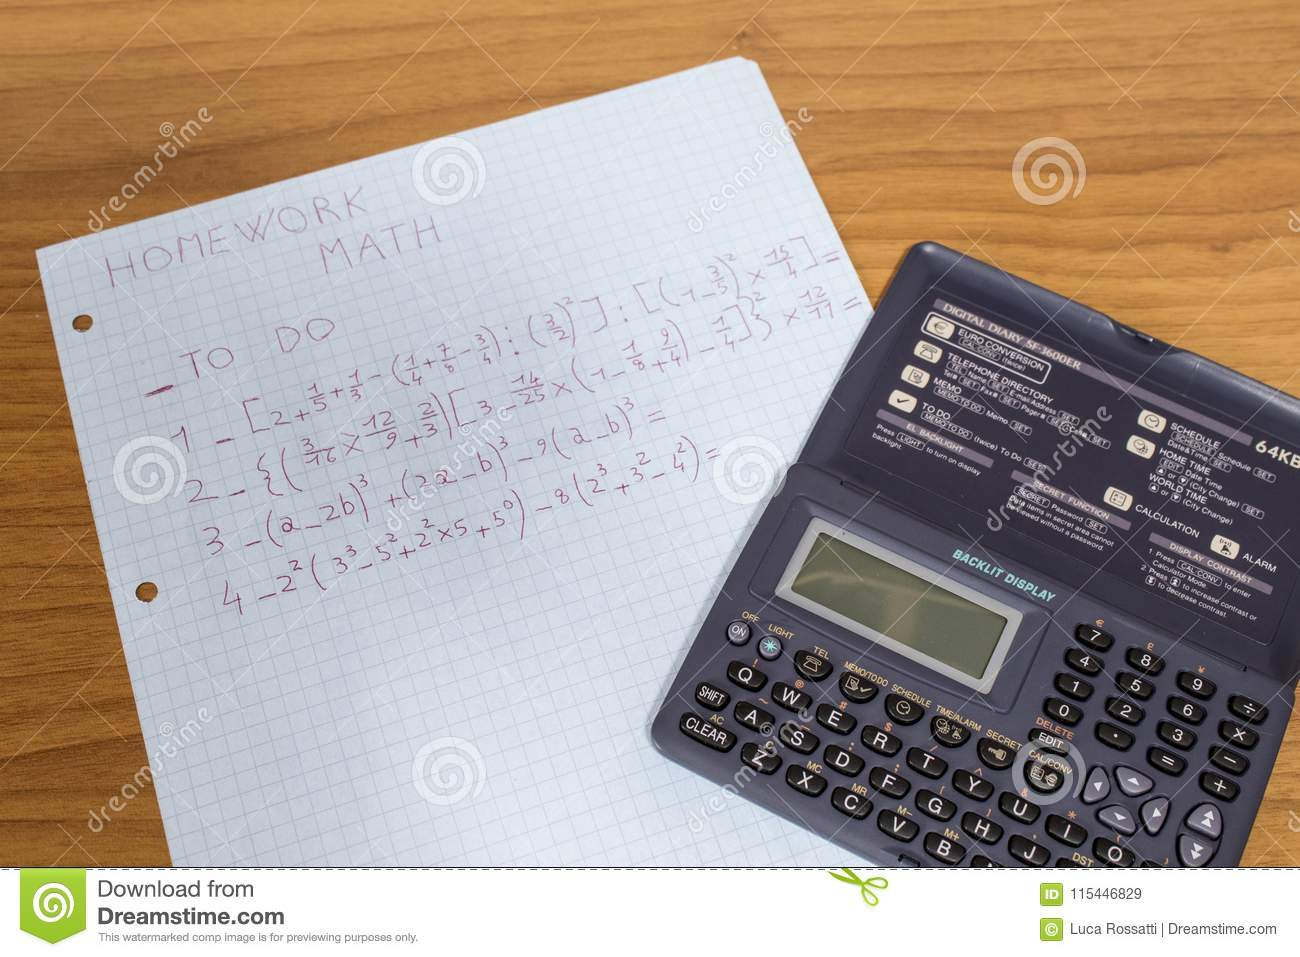 A Student Is Doing Math Homework With A Calculator On A Wood